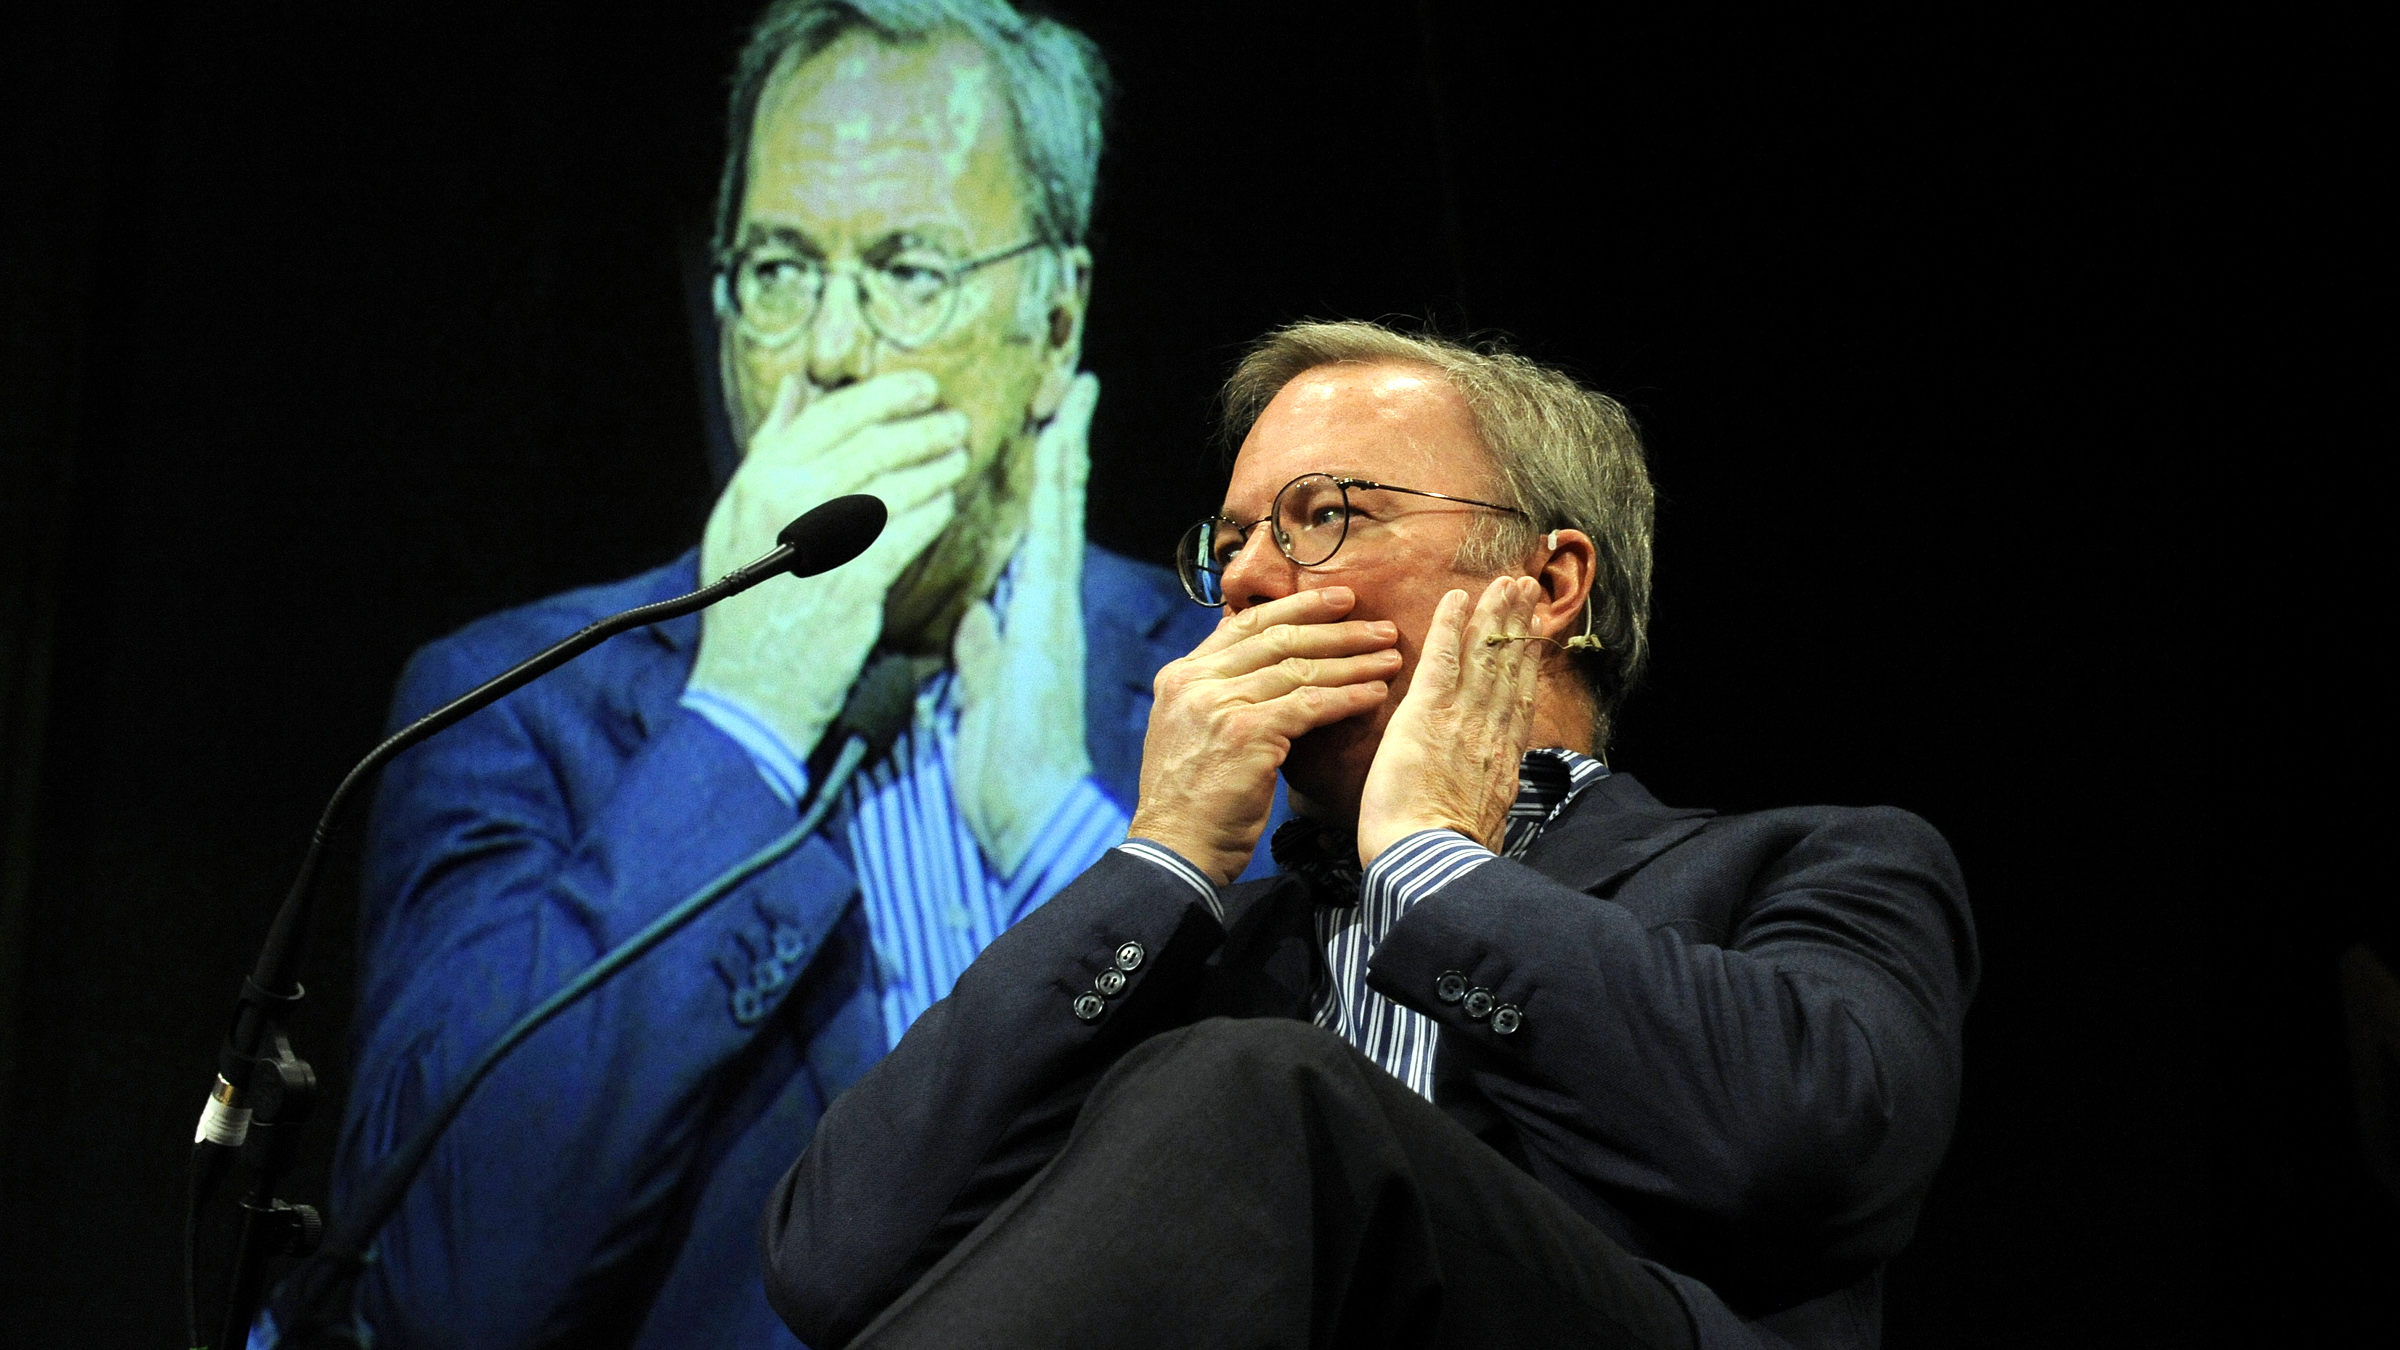 Google Executive Chairman Eric Schmidt speaks about the connected world, at the Hay Festival, in Hay-on-Wye, central Wales May 25, 2013.